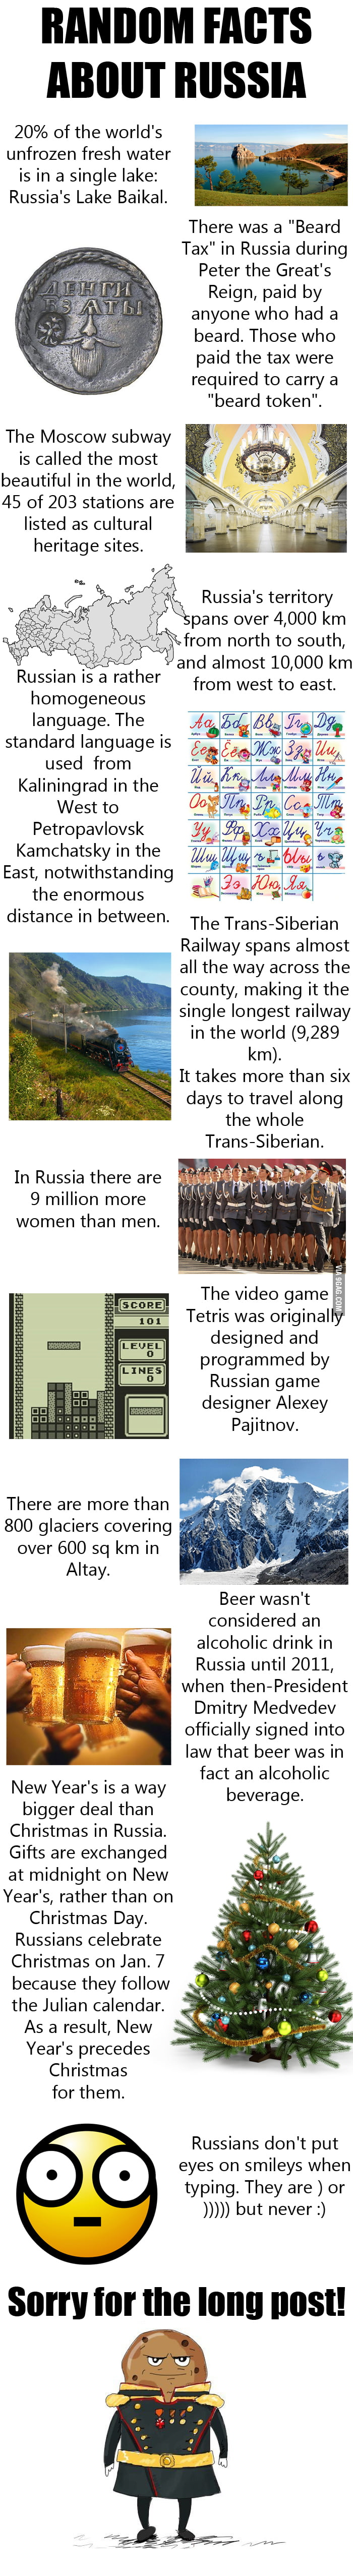 12 interesting facts about Russia - 9GAG